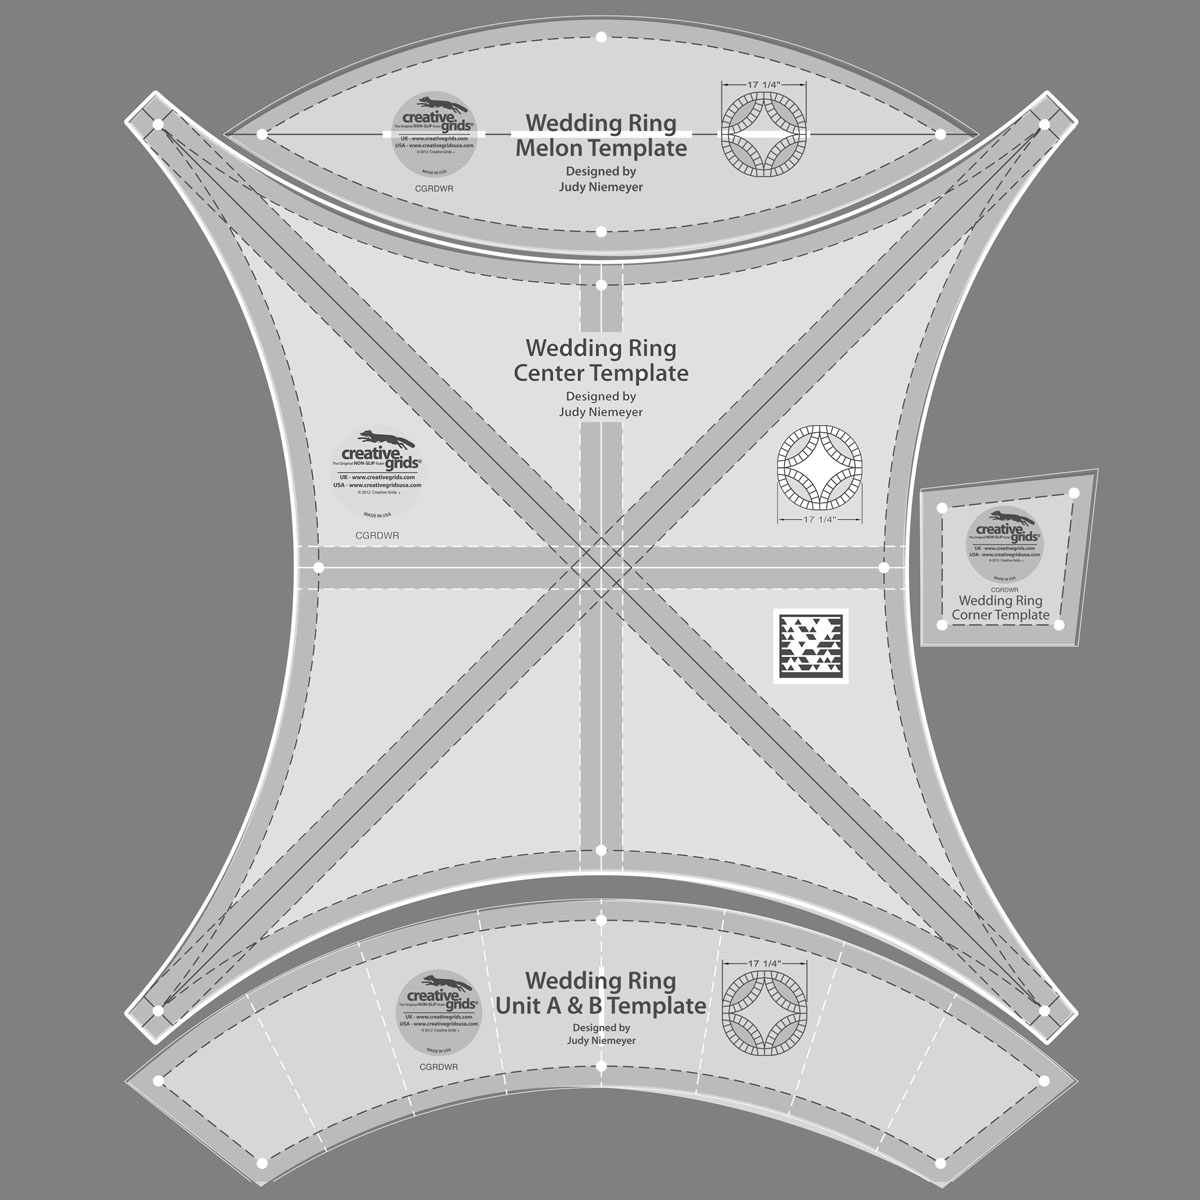 grandmas wedding ring wedding ring quilt pattern Related Products